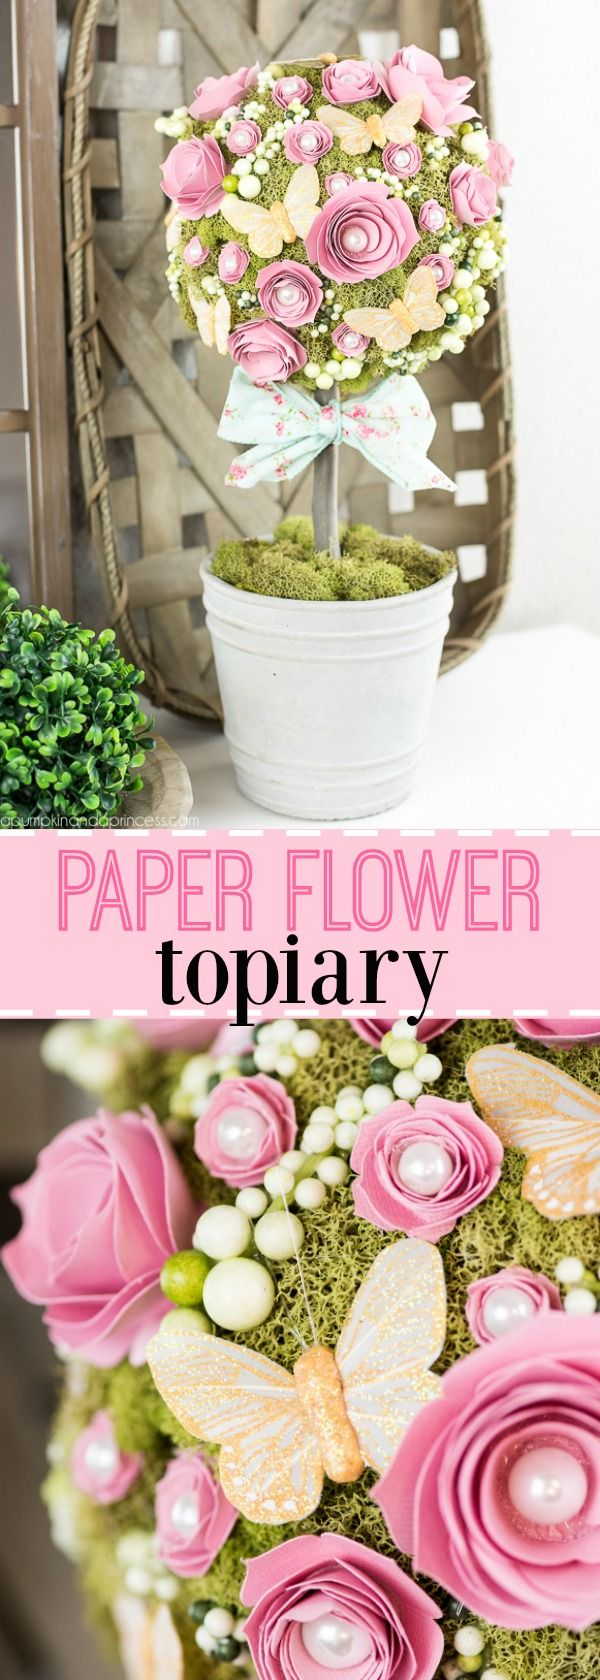 How to make a paper flower topiary from MichaelsMakers  A Pumpkin And A Princess